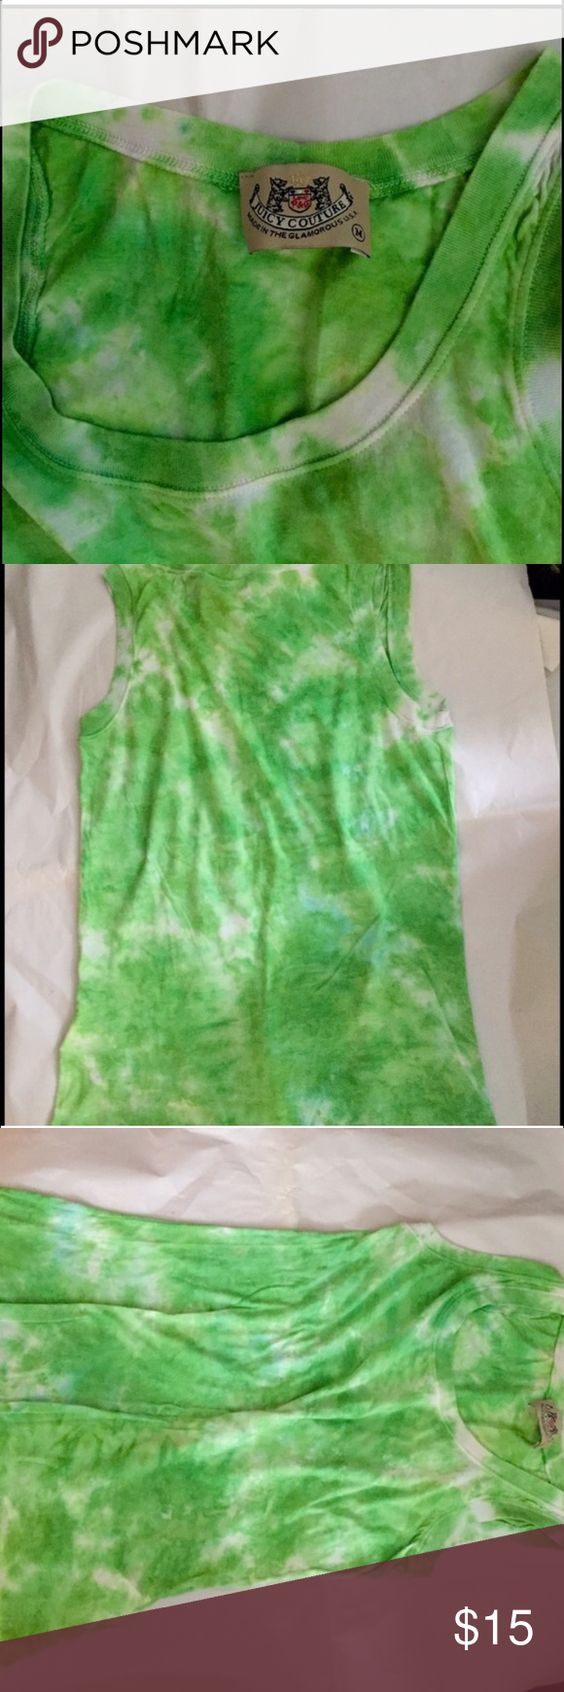 Juicy Couture, Tye-Dye, Sleeve-Less, Fun Top! This Top is in Excellent Condition, not sure if i ever even wore it...oopsies! Authentic Juicy Couture, Green, White, & a bit of Blue Tye-Dyed, Light-Weight, Sleeveless, Tank. Size Medium- would also fit a Size Small Perfectly! Very Versatile! Wear with Jeans or Shorts to Just hang out, pair with a Blazer& Slacks to Brighten up a work outfit! Wear it 2 the Beach,over a Bathing-Suit, to workout at the Gym, out to eat-Literally Anywhere! Great Top…